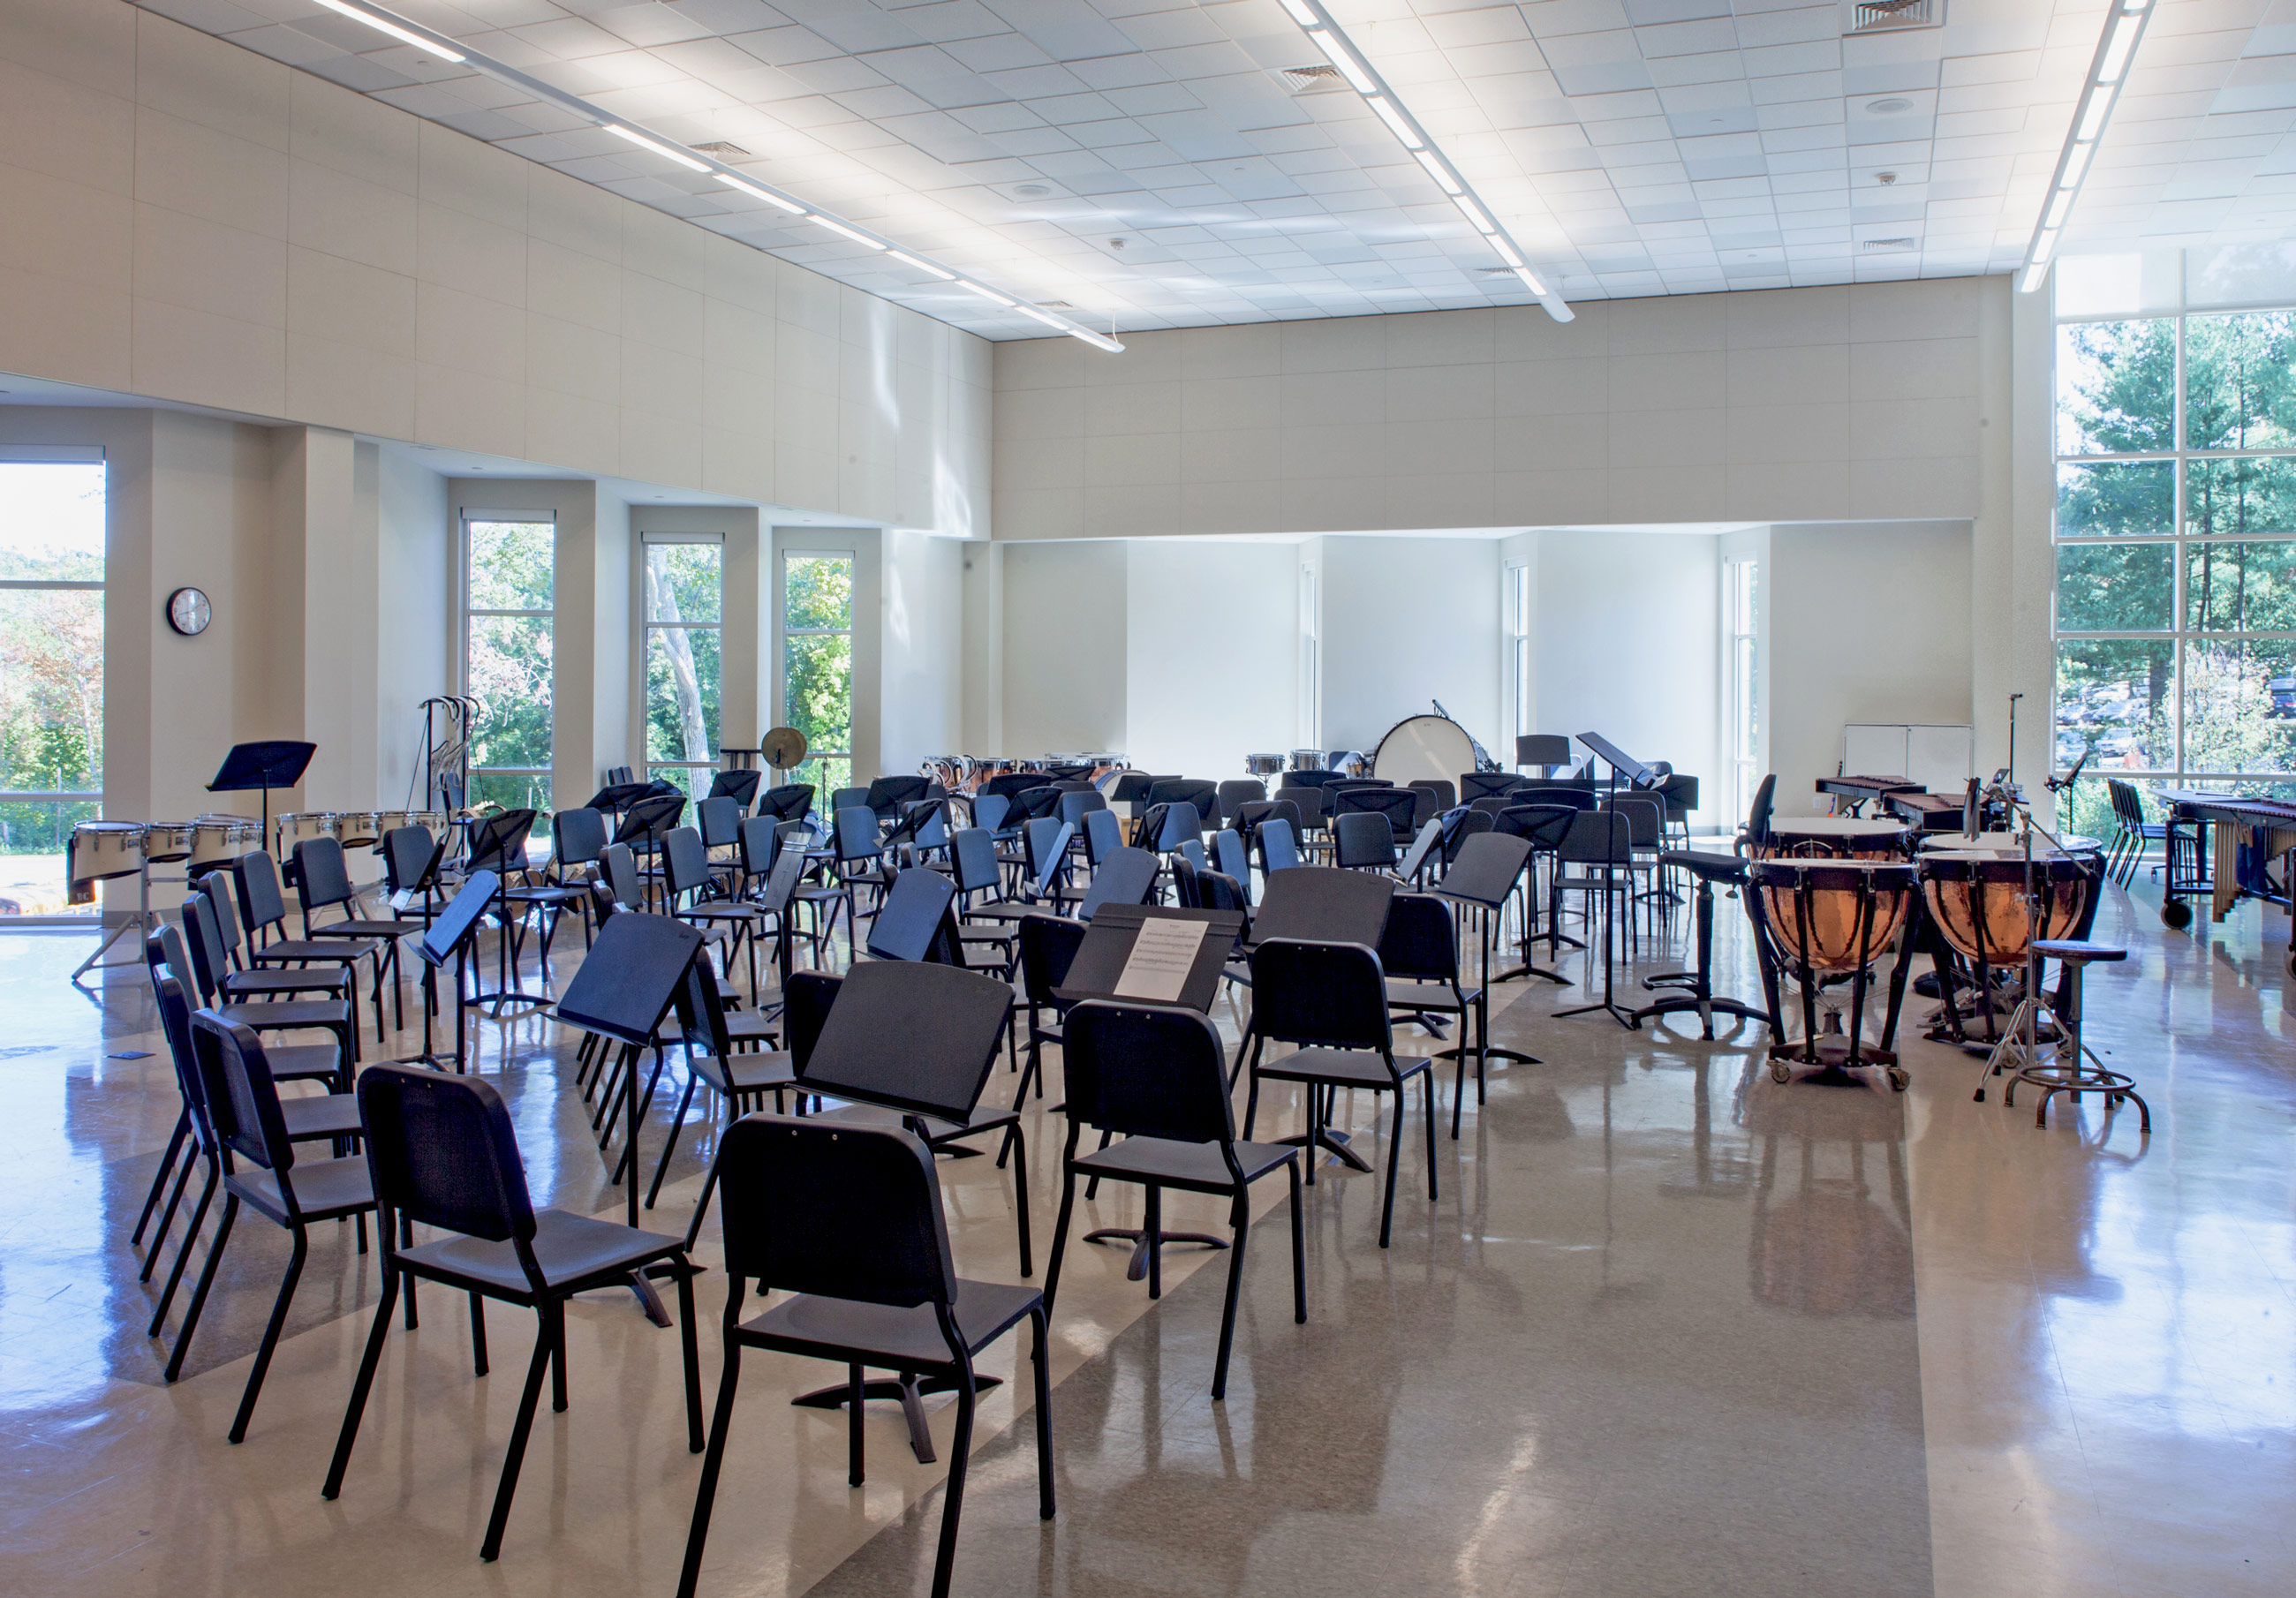 Bright, light-filled band room, with black chairs and musical equipment arranged in a semi-circle.